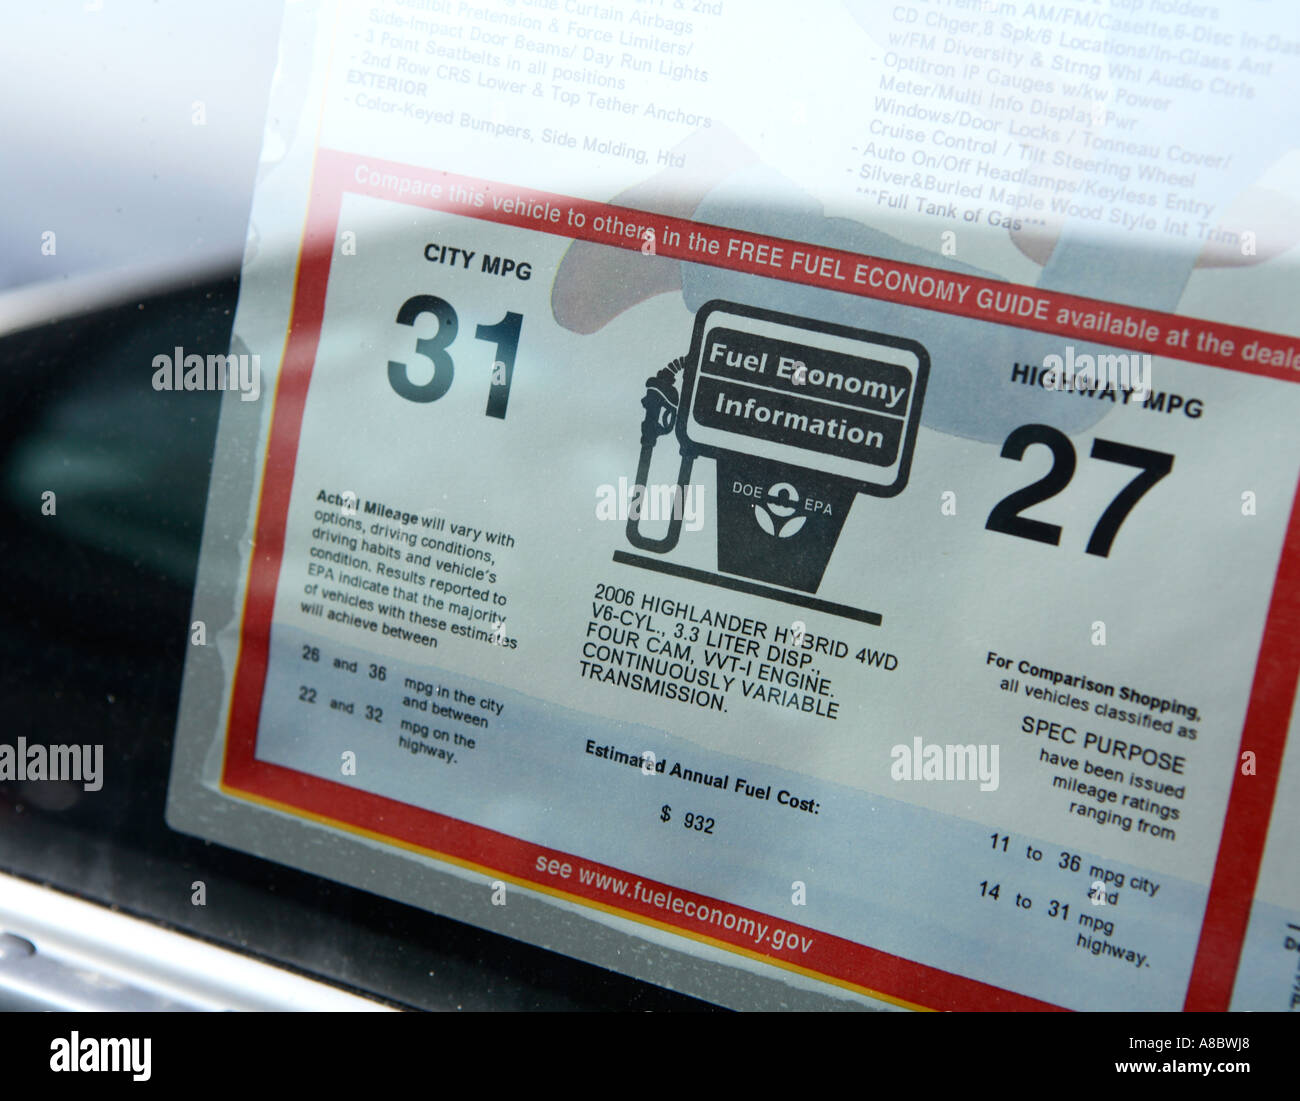 Stock photo window sticker on a 2006 toyota highlander hybrid suv showing gas mileage estimates